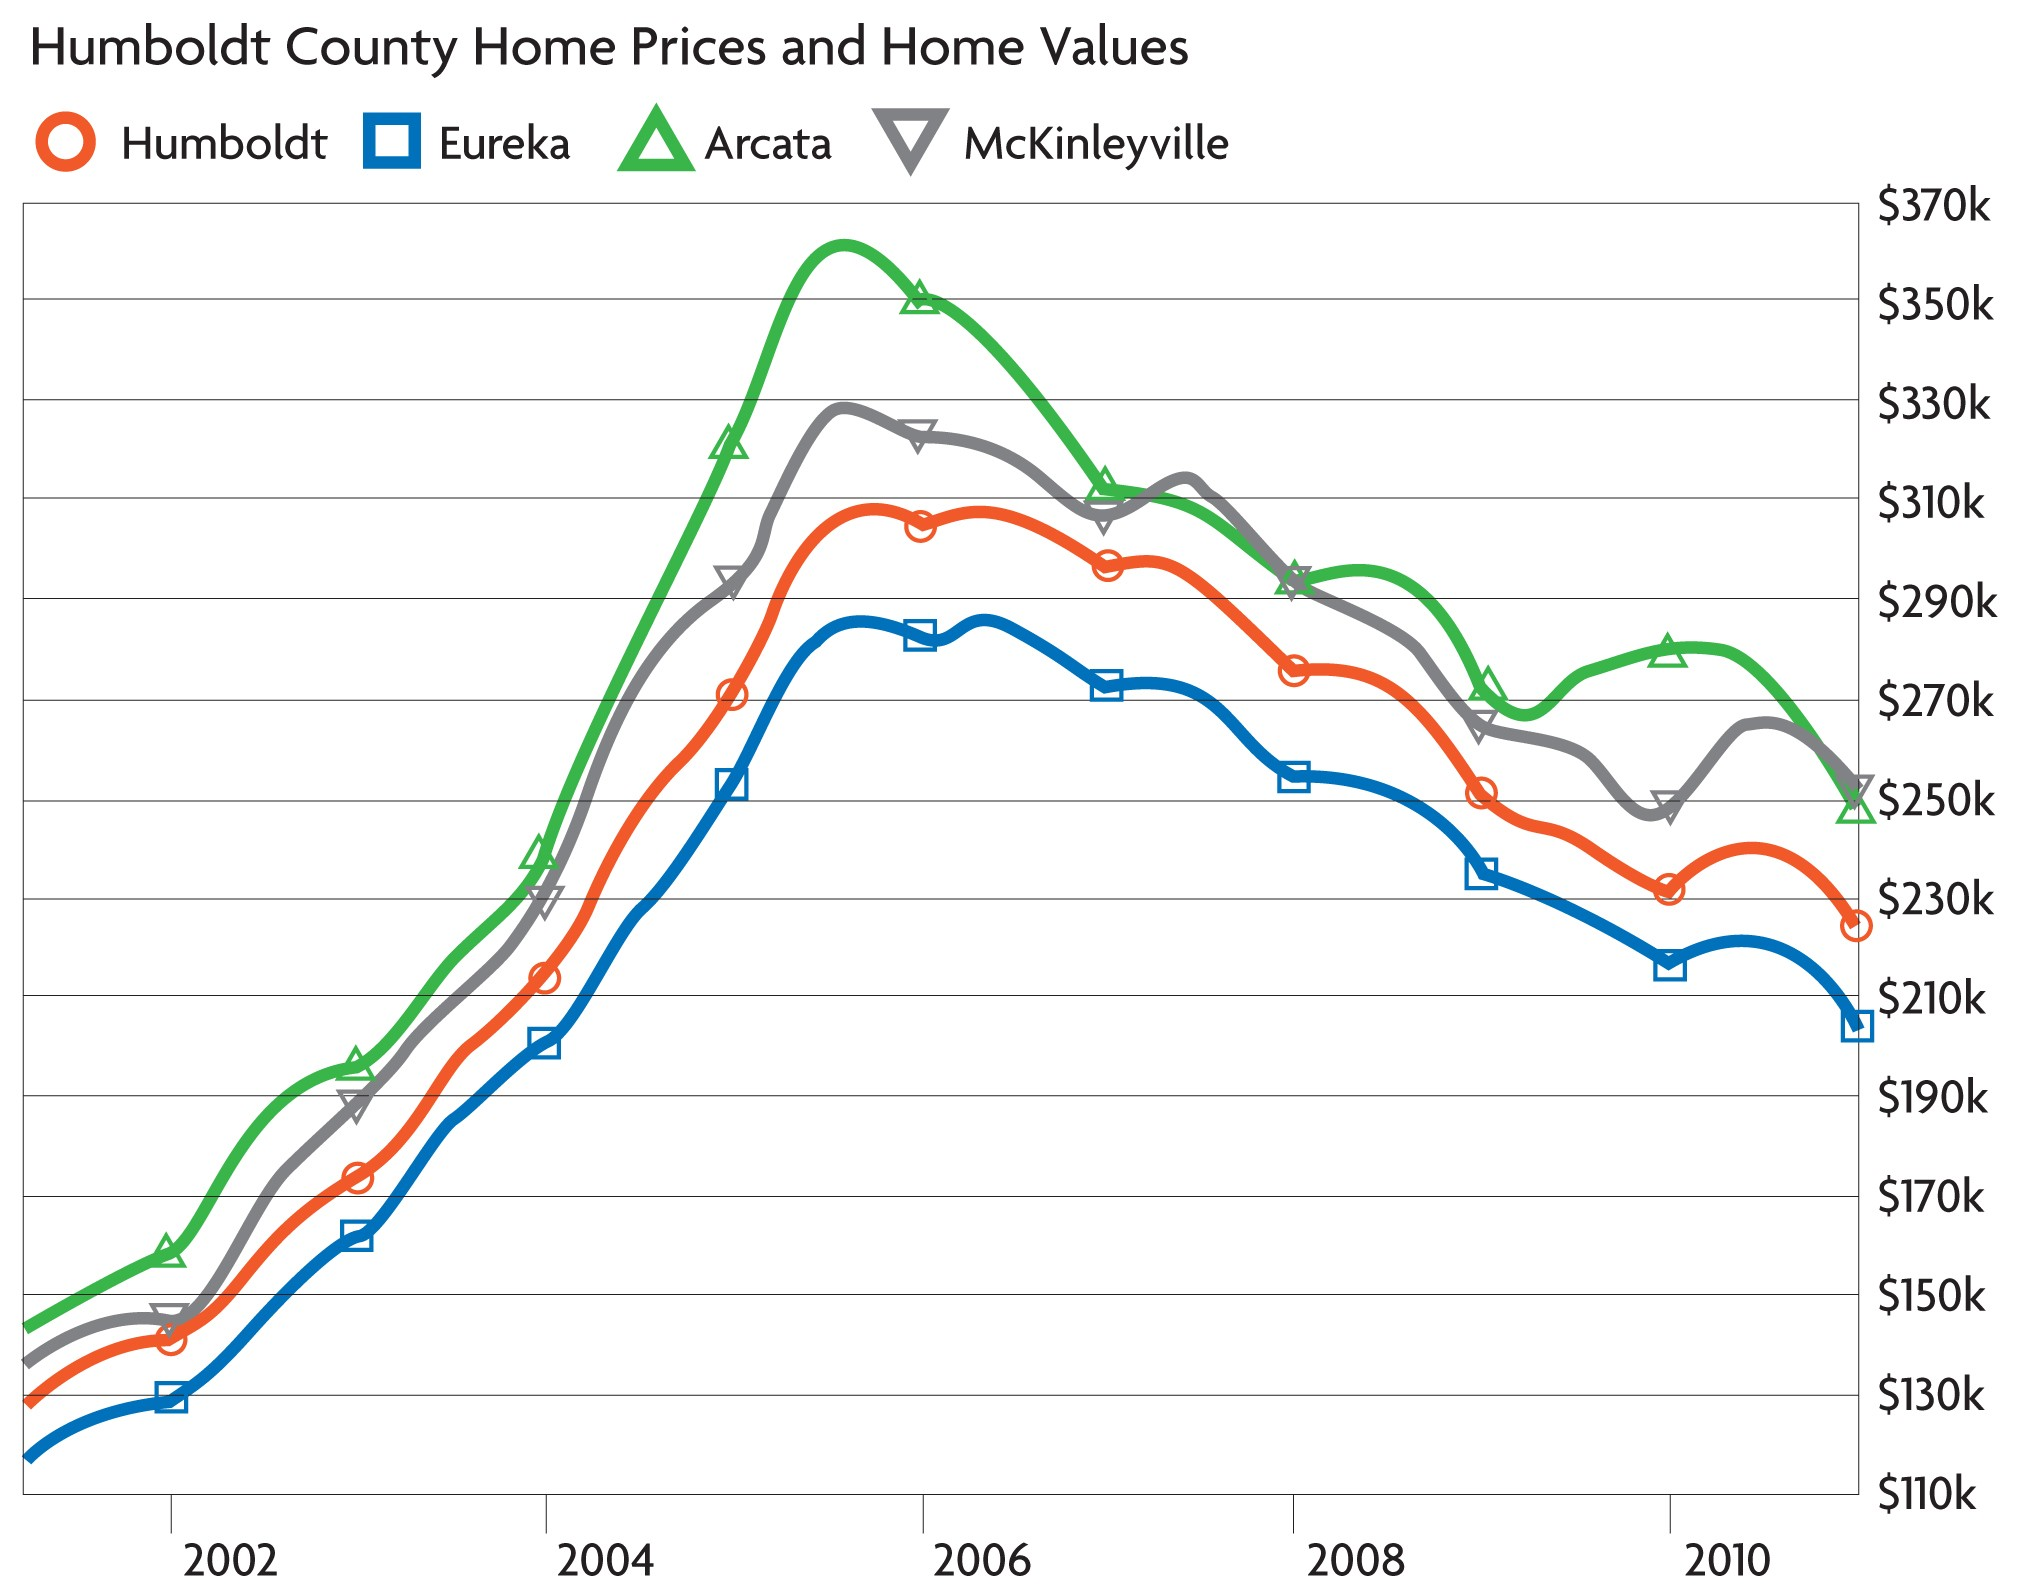 graph courtesy of Zillow.com